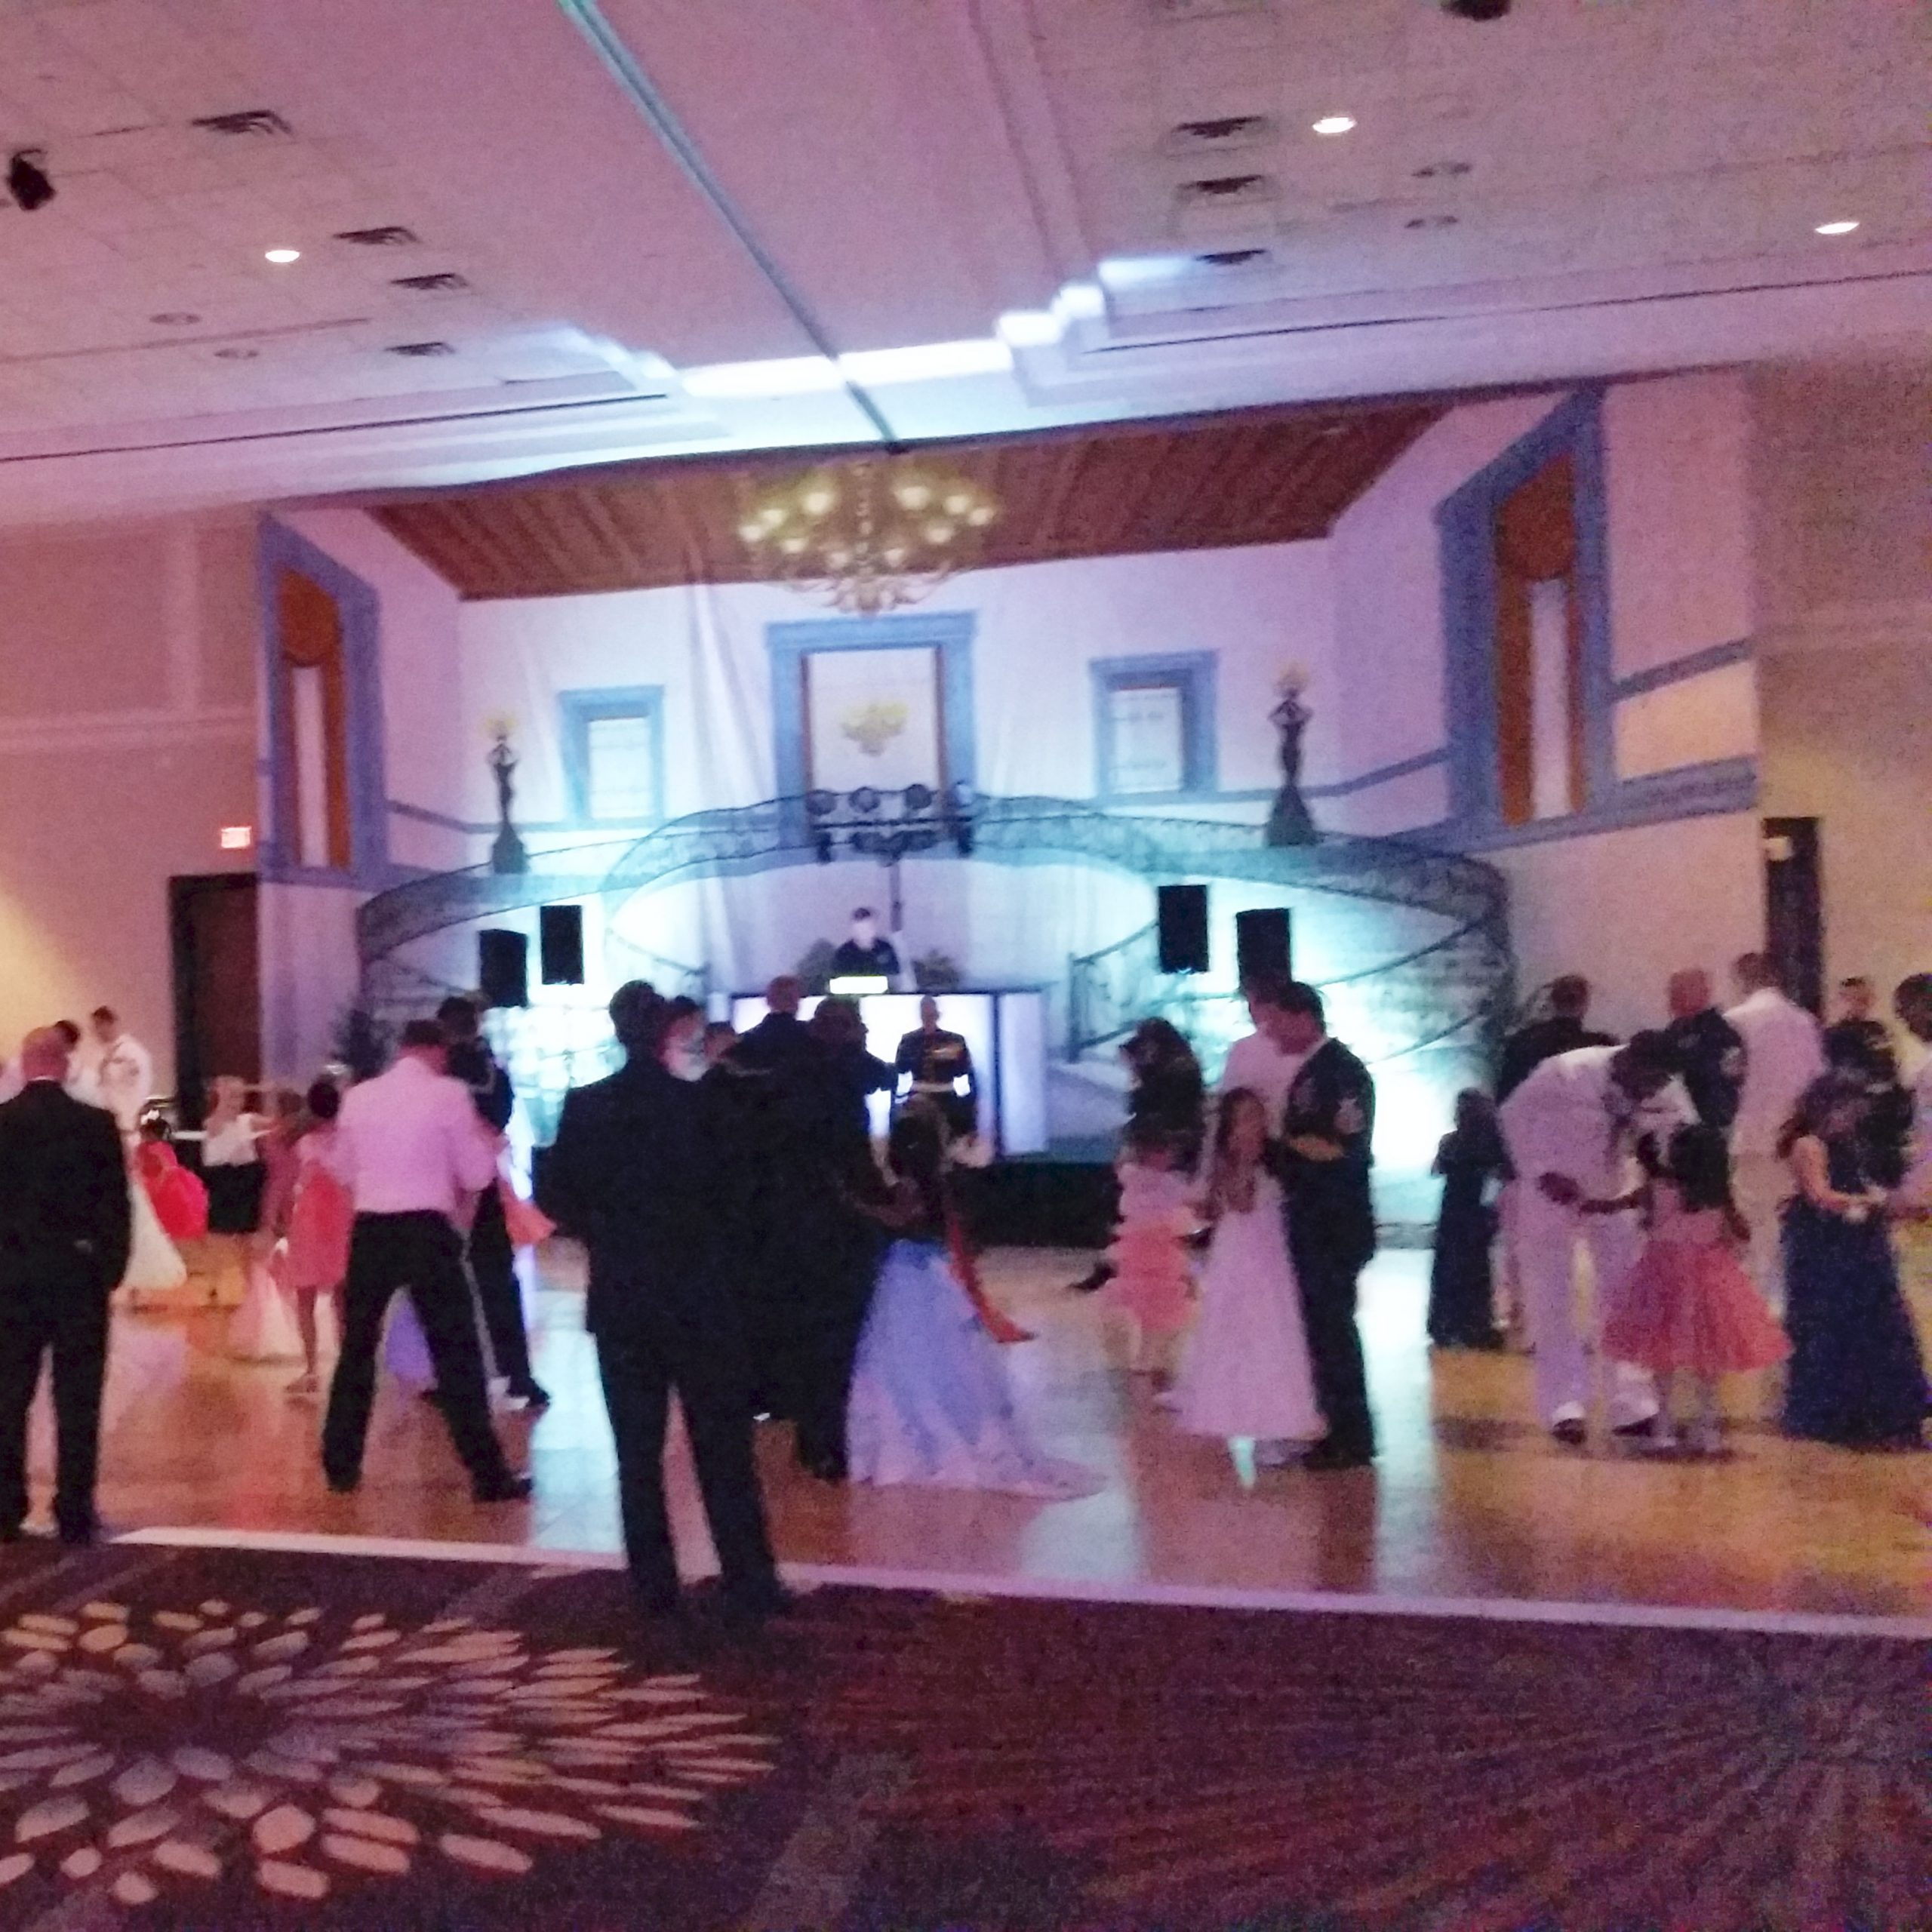 ASYMCA Father Daughter Dance 2018 Sponsored by Omni